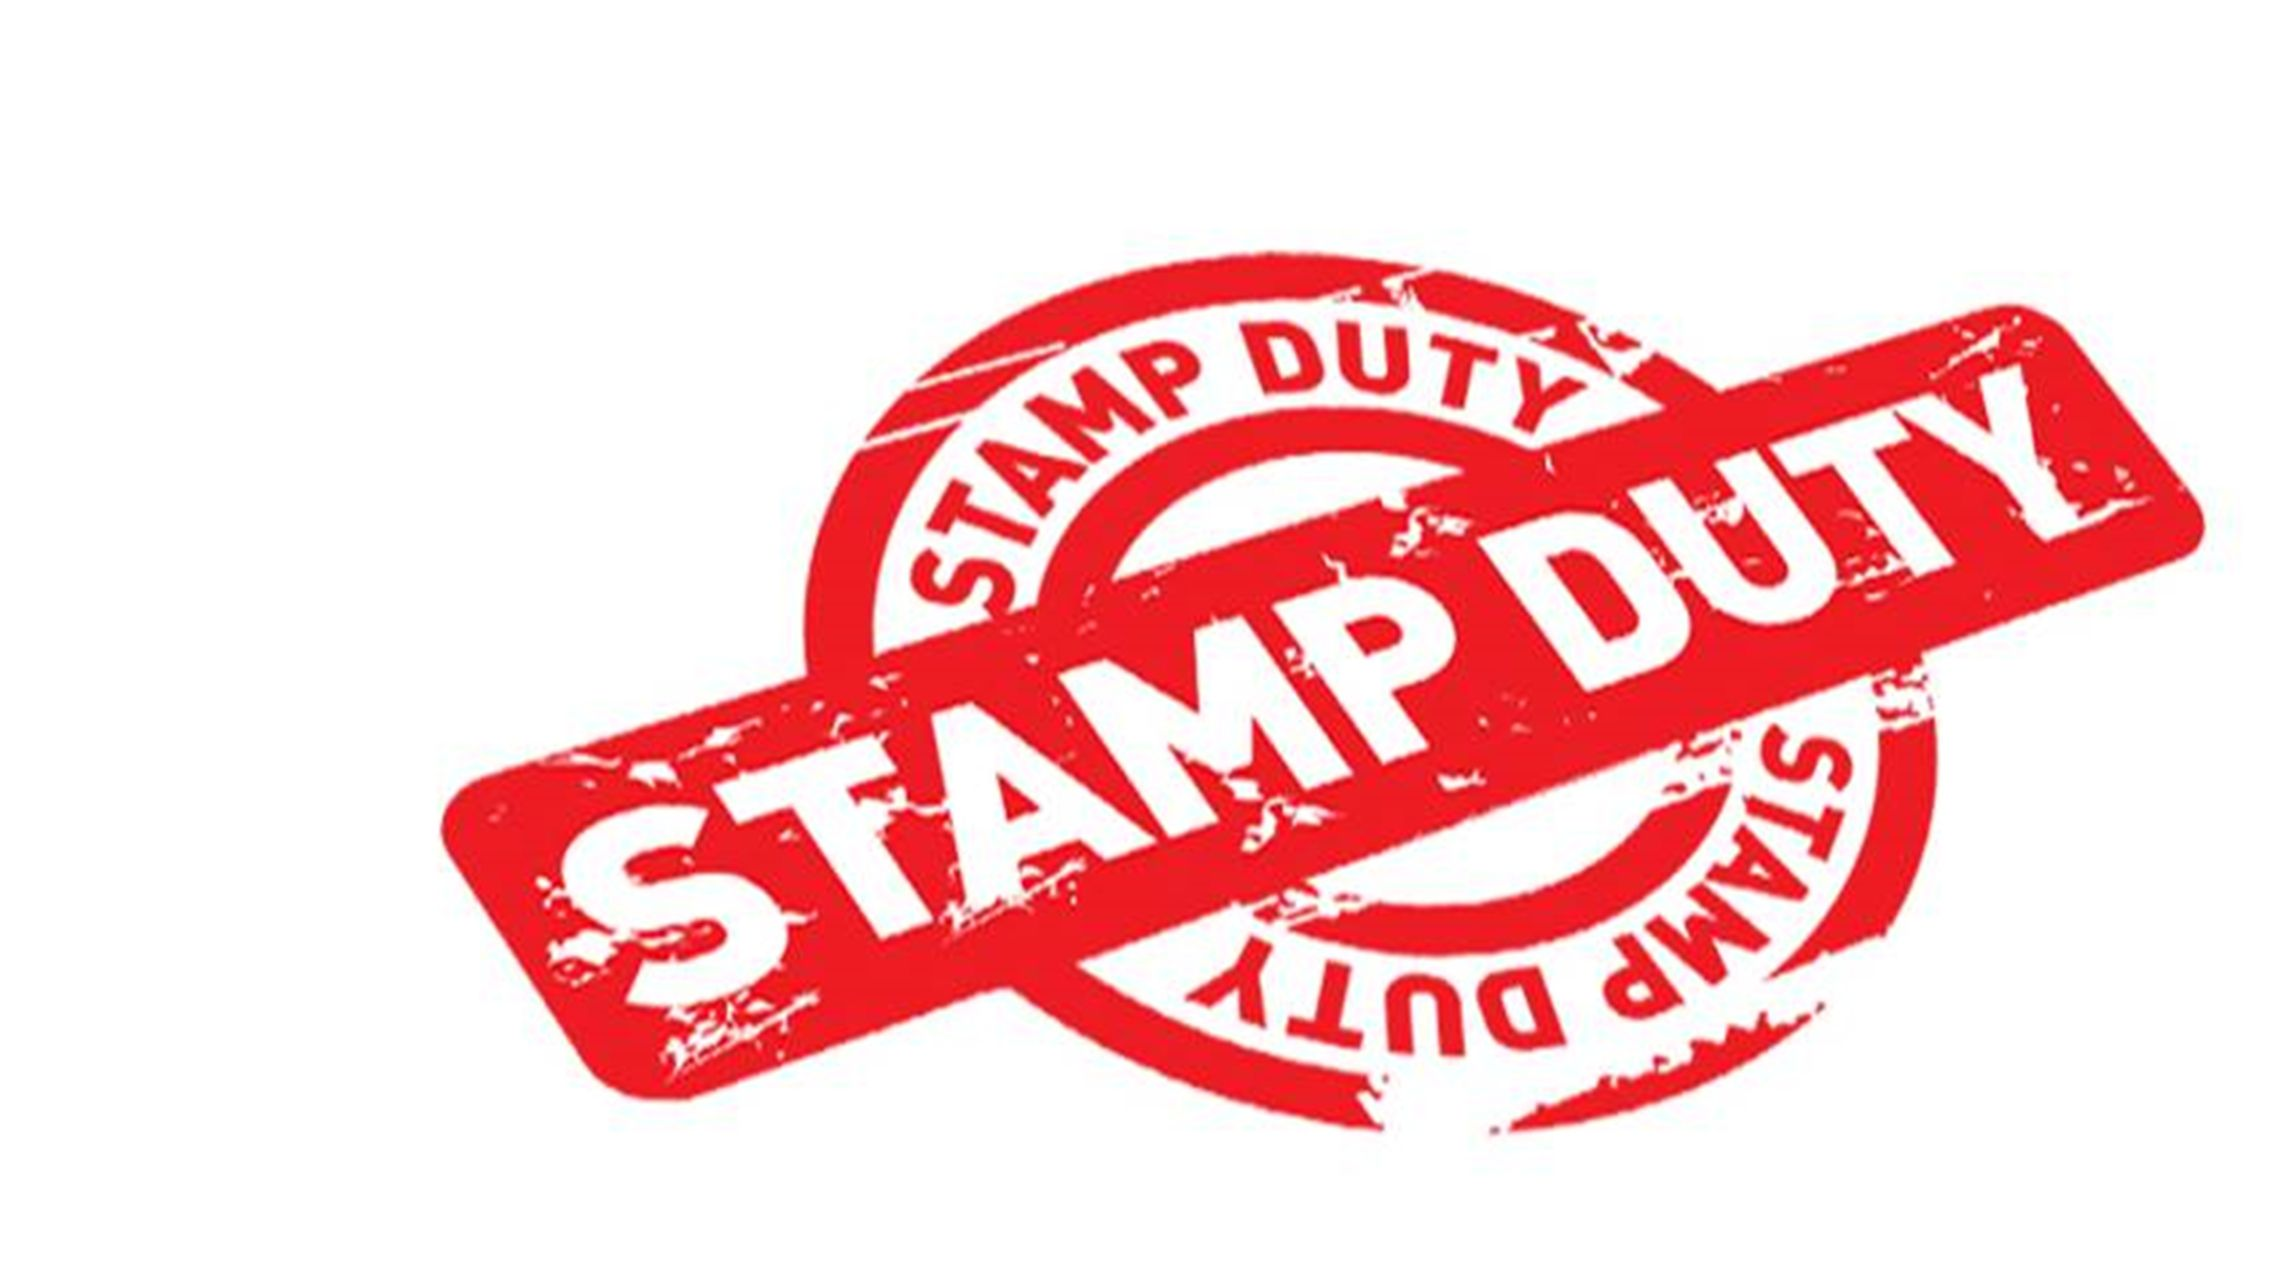 stamp duty - photo #15